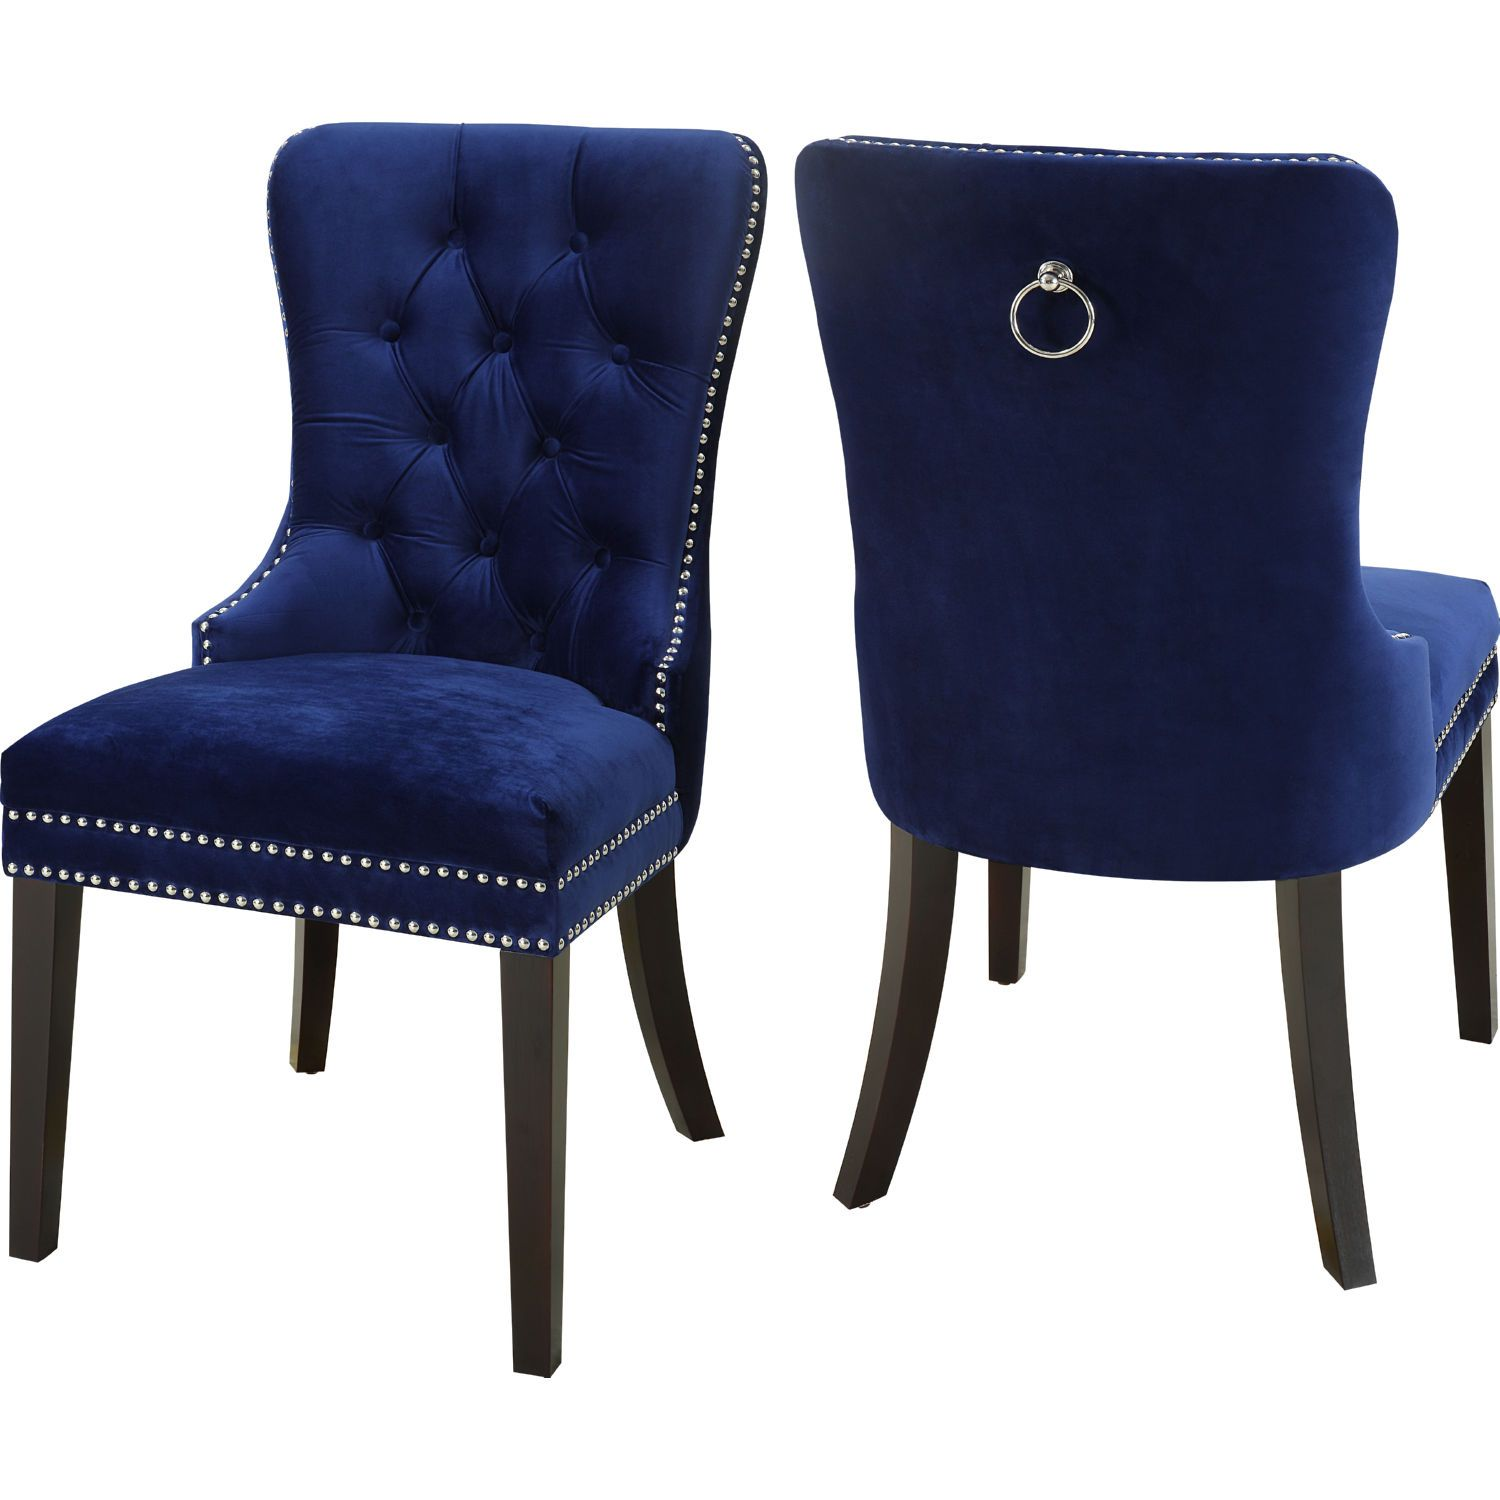 Navy Blue Wingback Chairs Wooden Arm Chair Velvet Dining Home Ideas